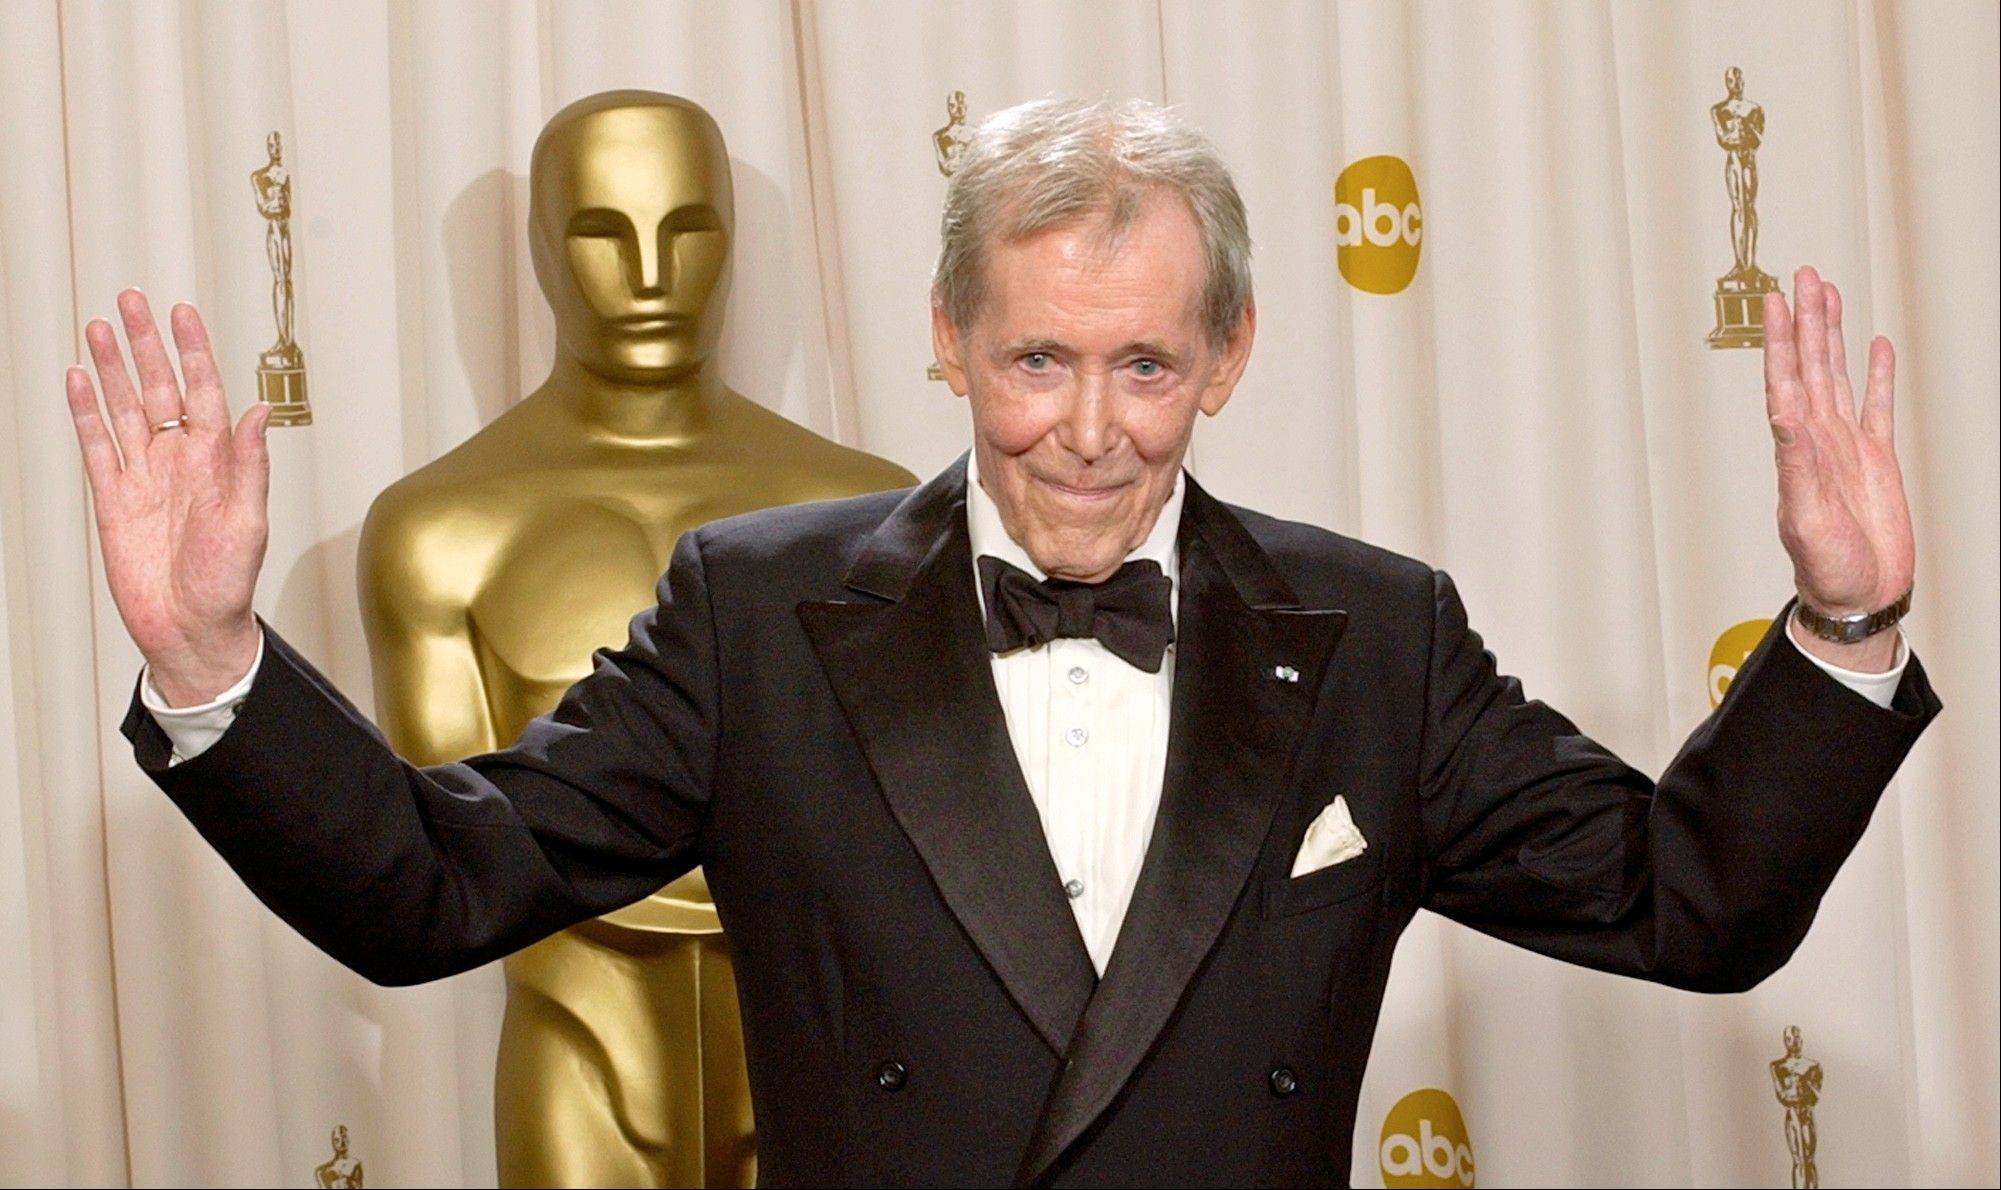 Peter O'Toole appears backstage after receiving the Academy Award's Honorary Award during the 75th annual Academy Awards in Los Angeles.